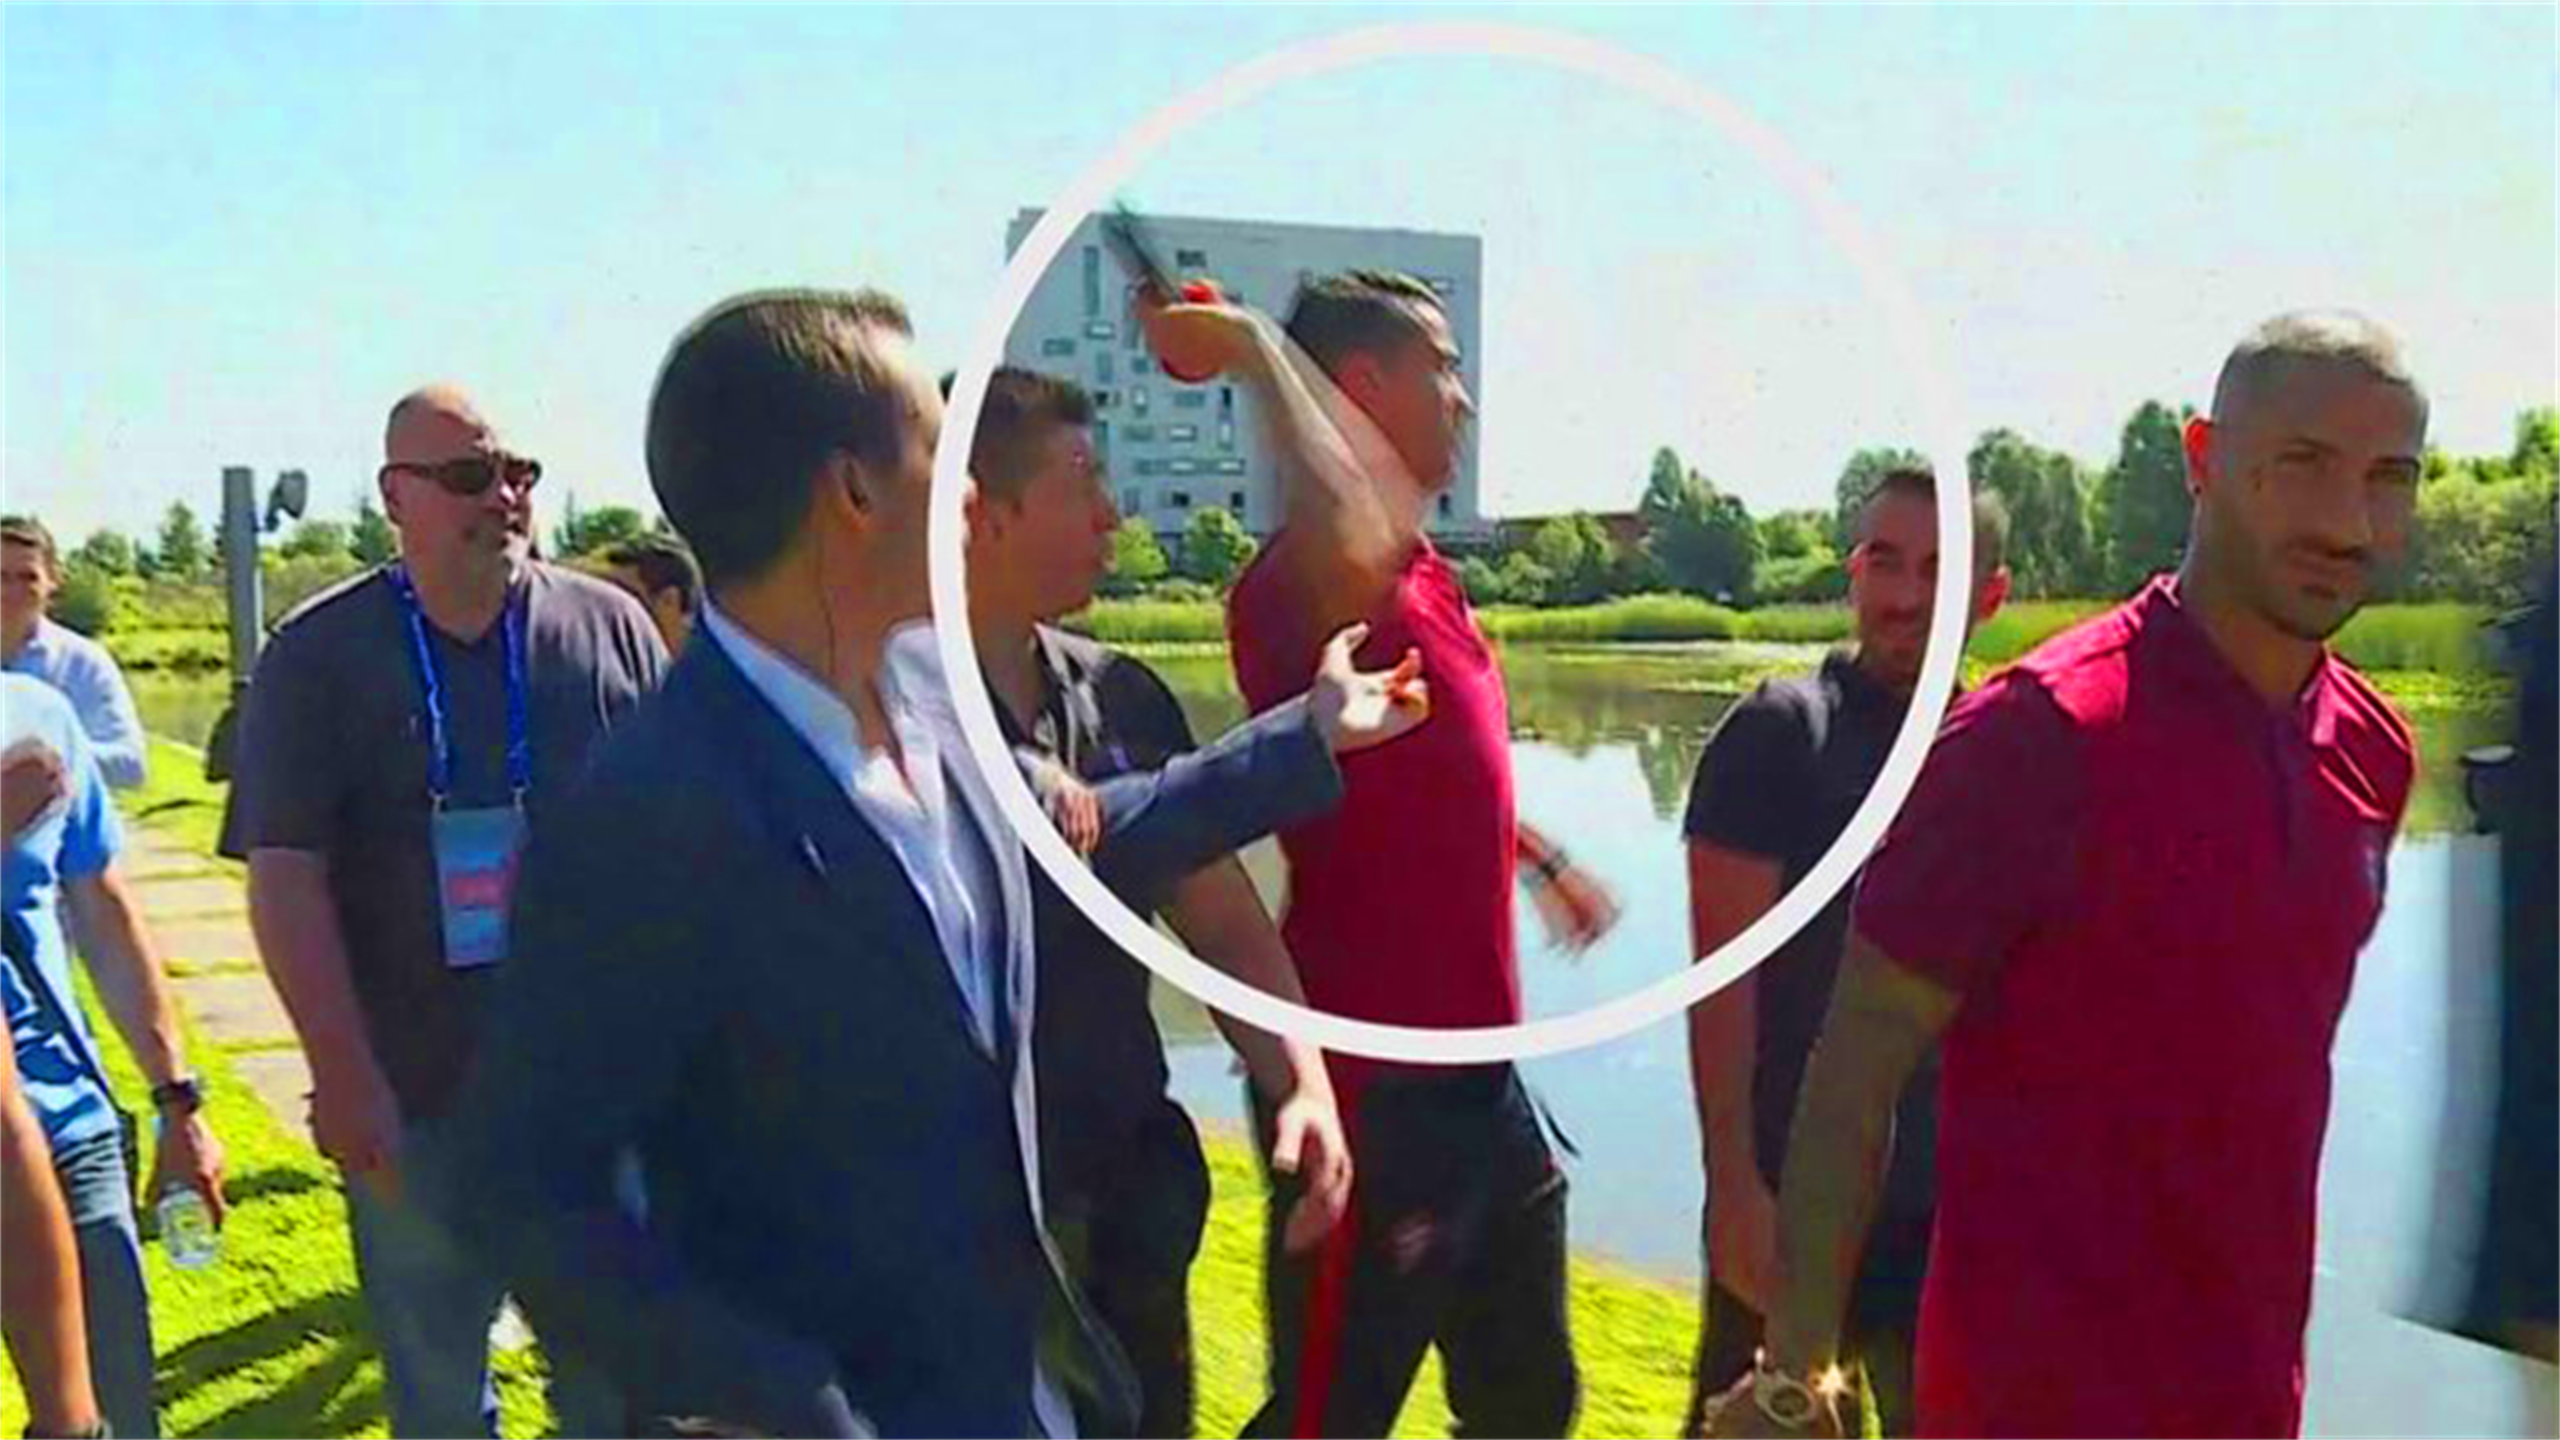 Cristiano Ronaldo doesn't like reporter's question, so throws microphone in lake (Record)